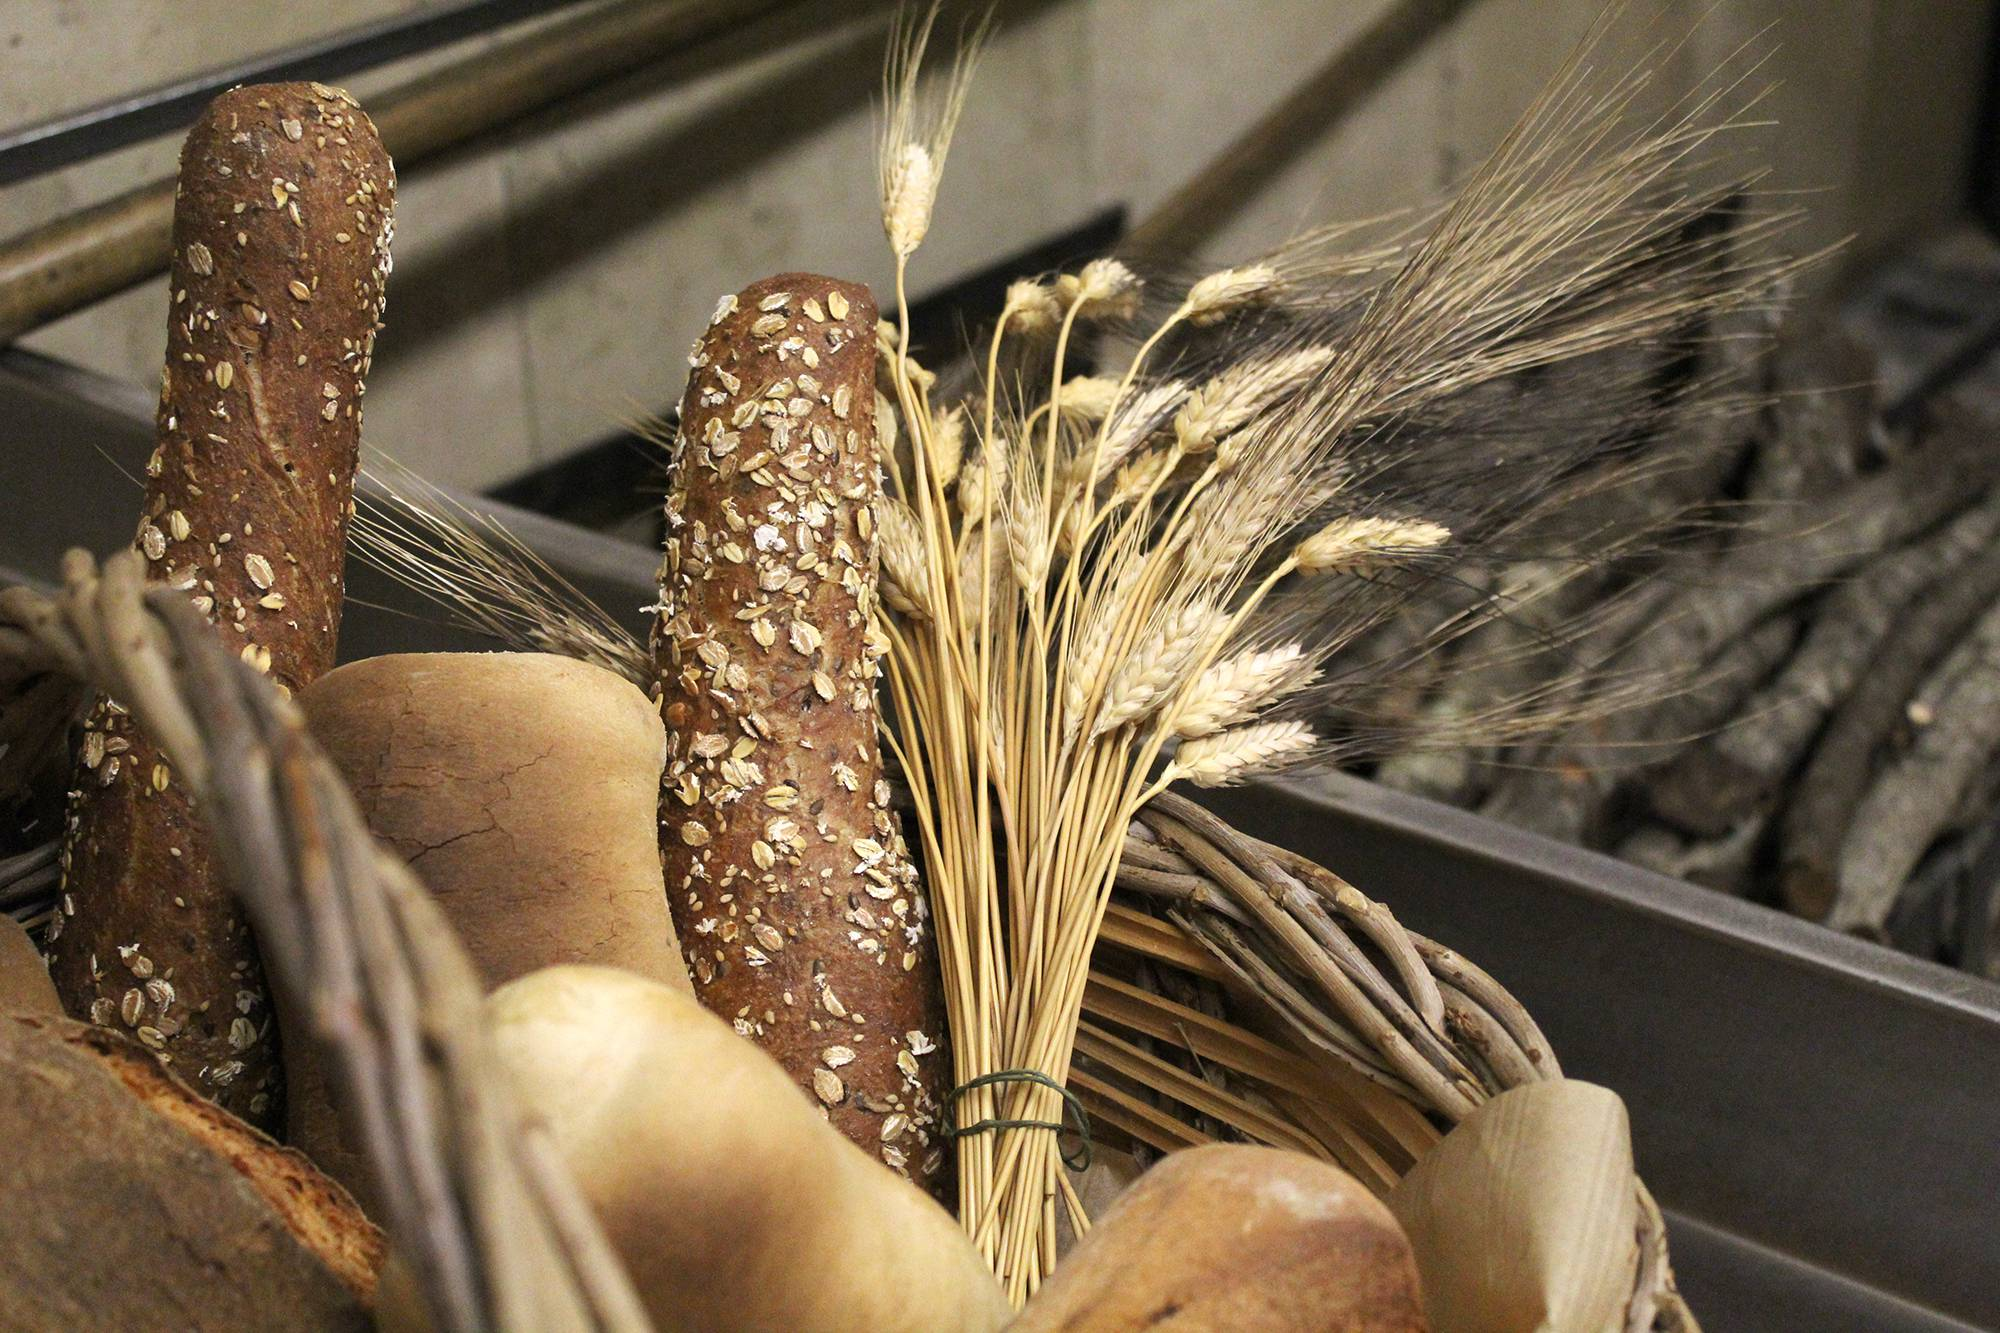 Learn how to make bread in Puglia